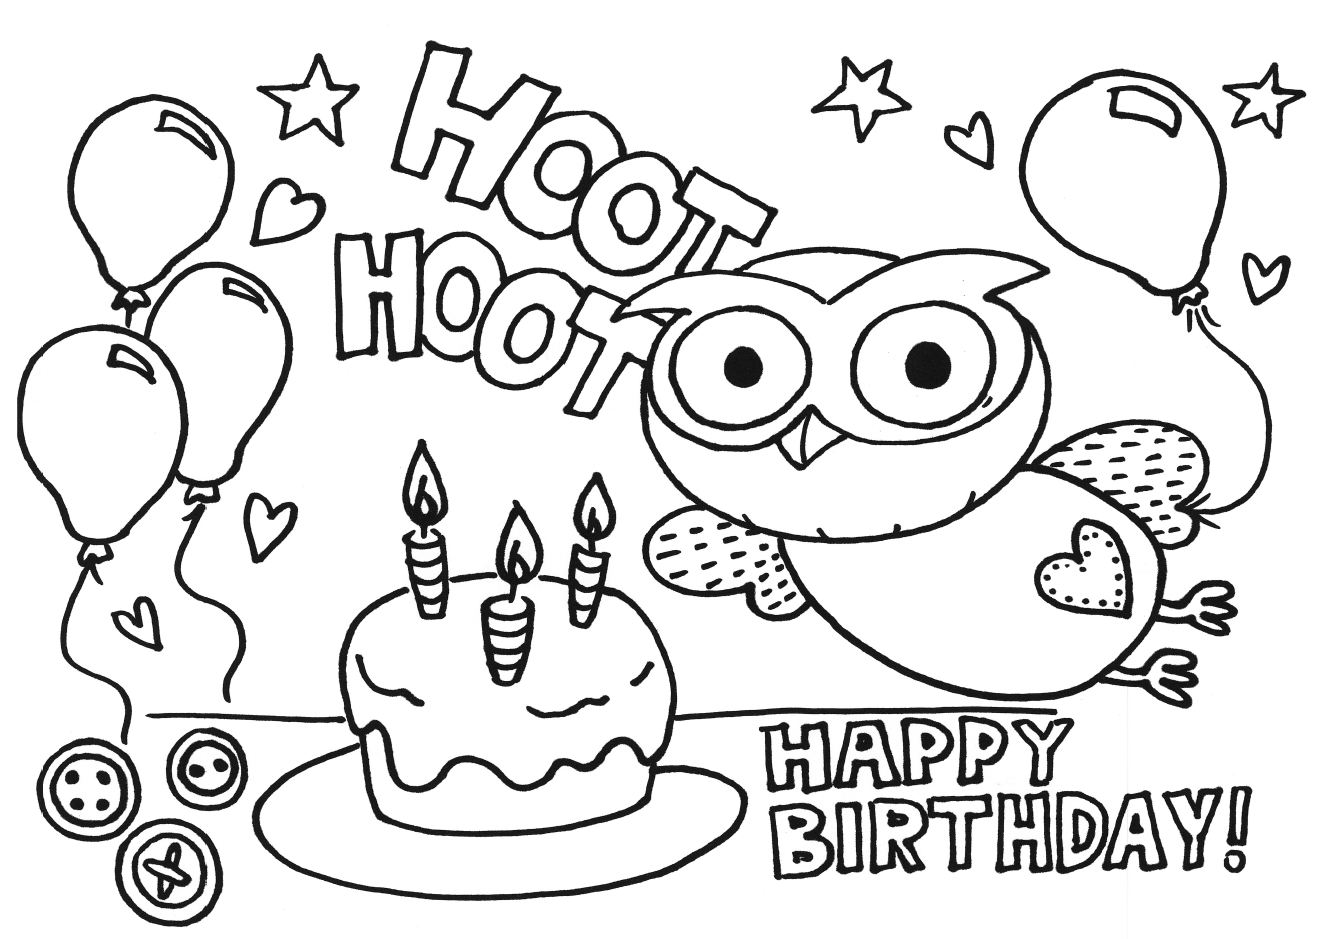 Happy Birthday Colouring Card additionally Cool Things To Draw On Birthday Cards in addition 7090 in addition snoopy teacher notes mousepad 1731967641 moreover 143693044337975170. on 18th birthday cards funny